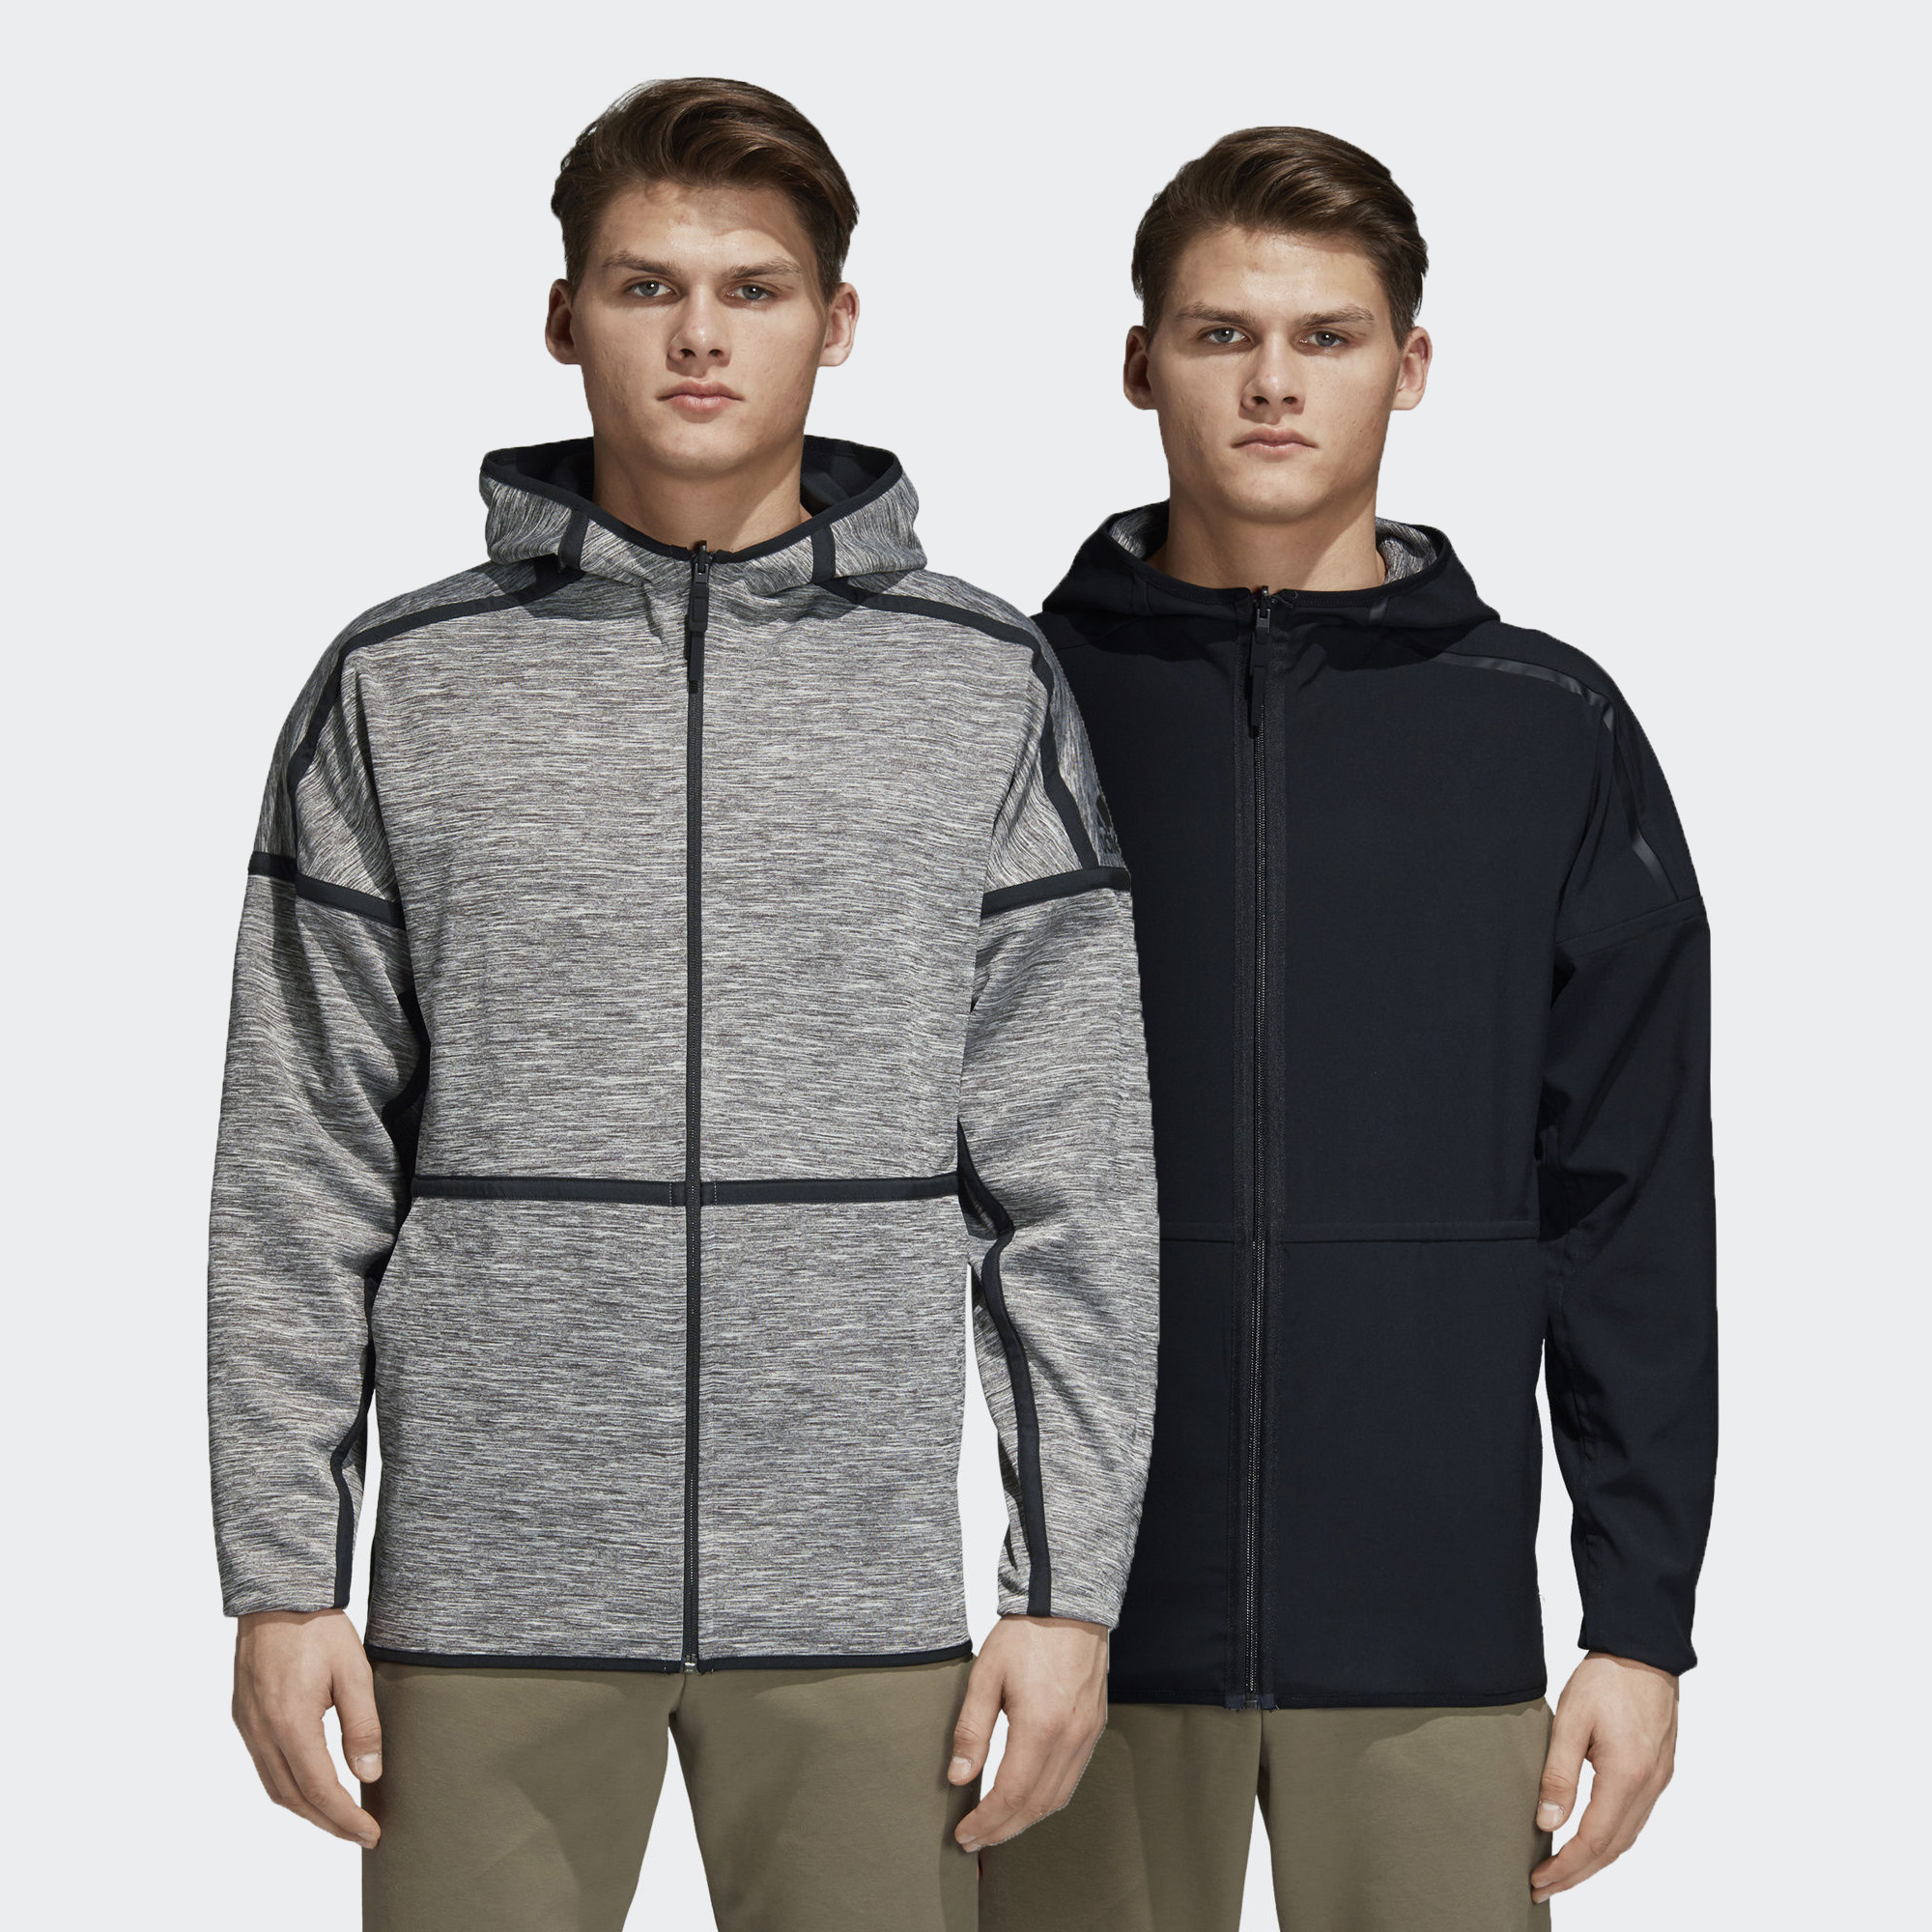 finest selection 38175 45797 adidas Z.N.E Reversible Hoodie - SPORTING GOODS Sports ...